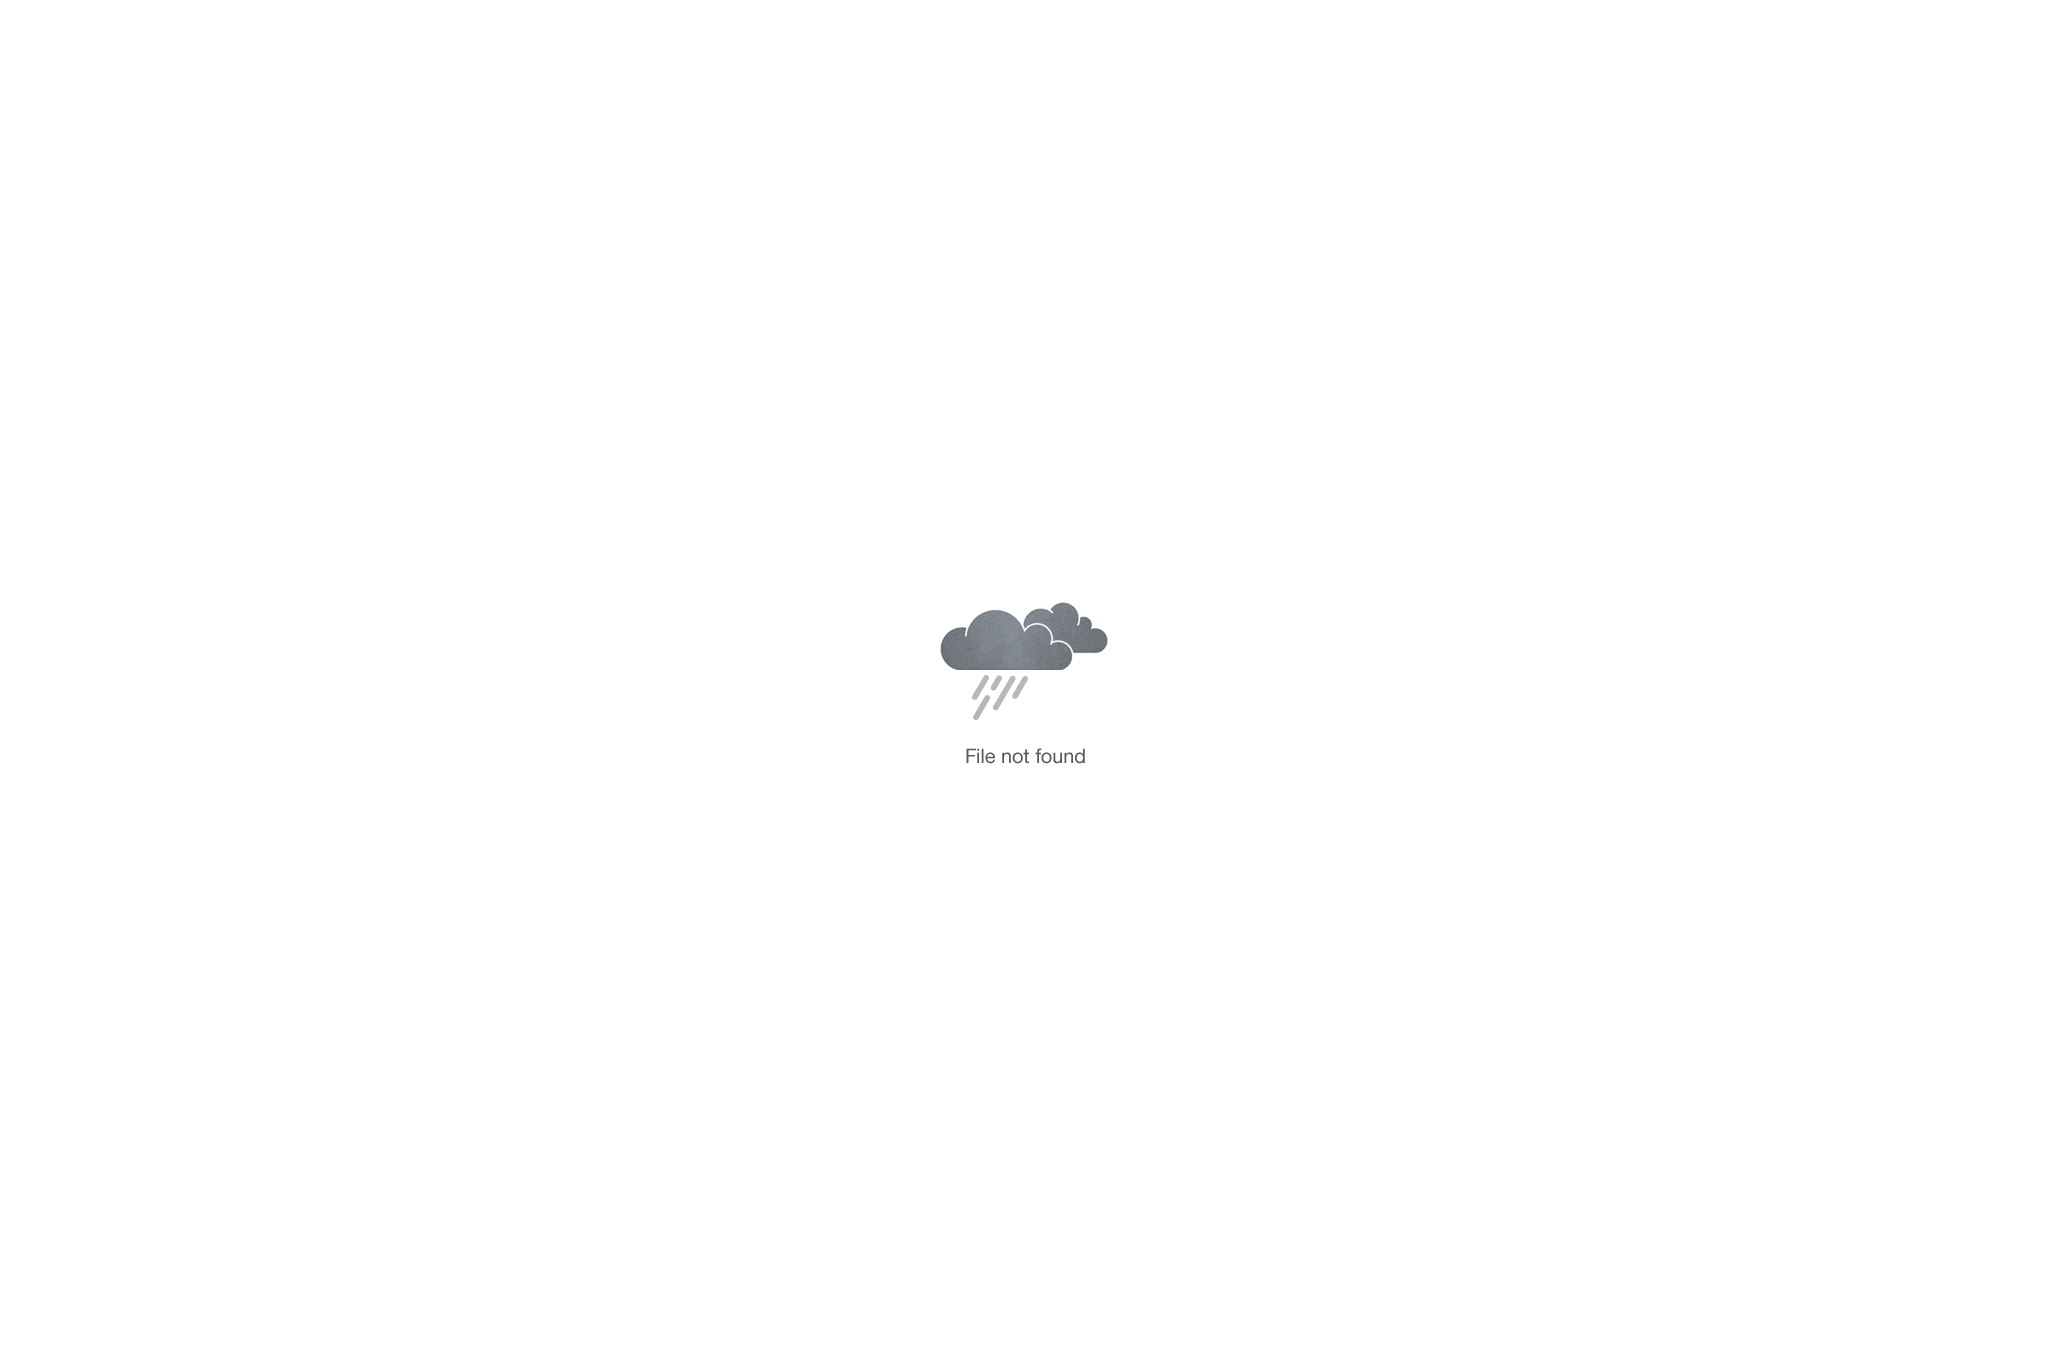 Equipe 1 féminine-Prénational - Chambery Volley Ball-Volley-Ball-Sponsorise-me-image-2